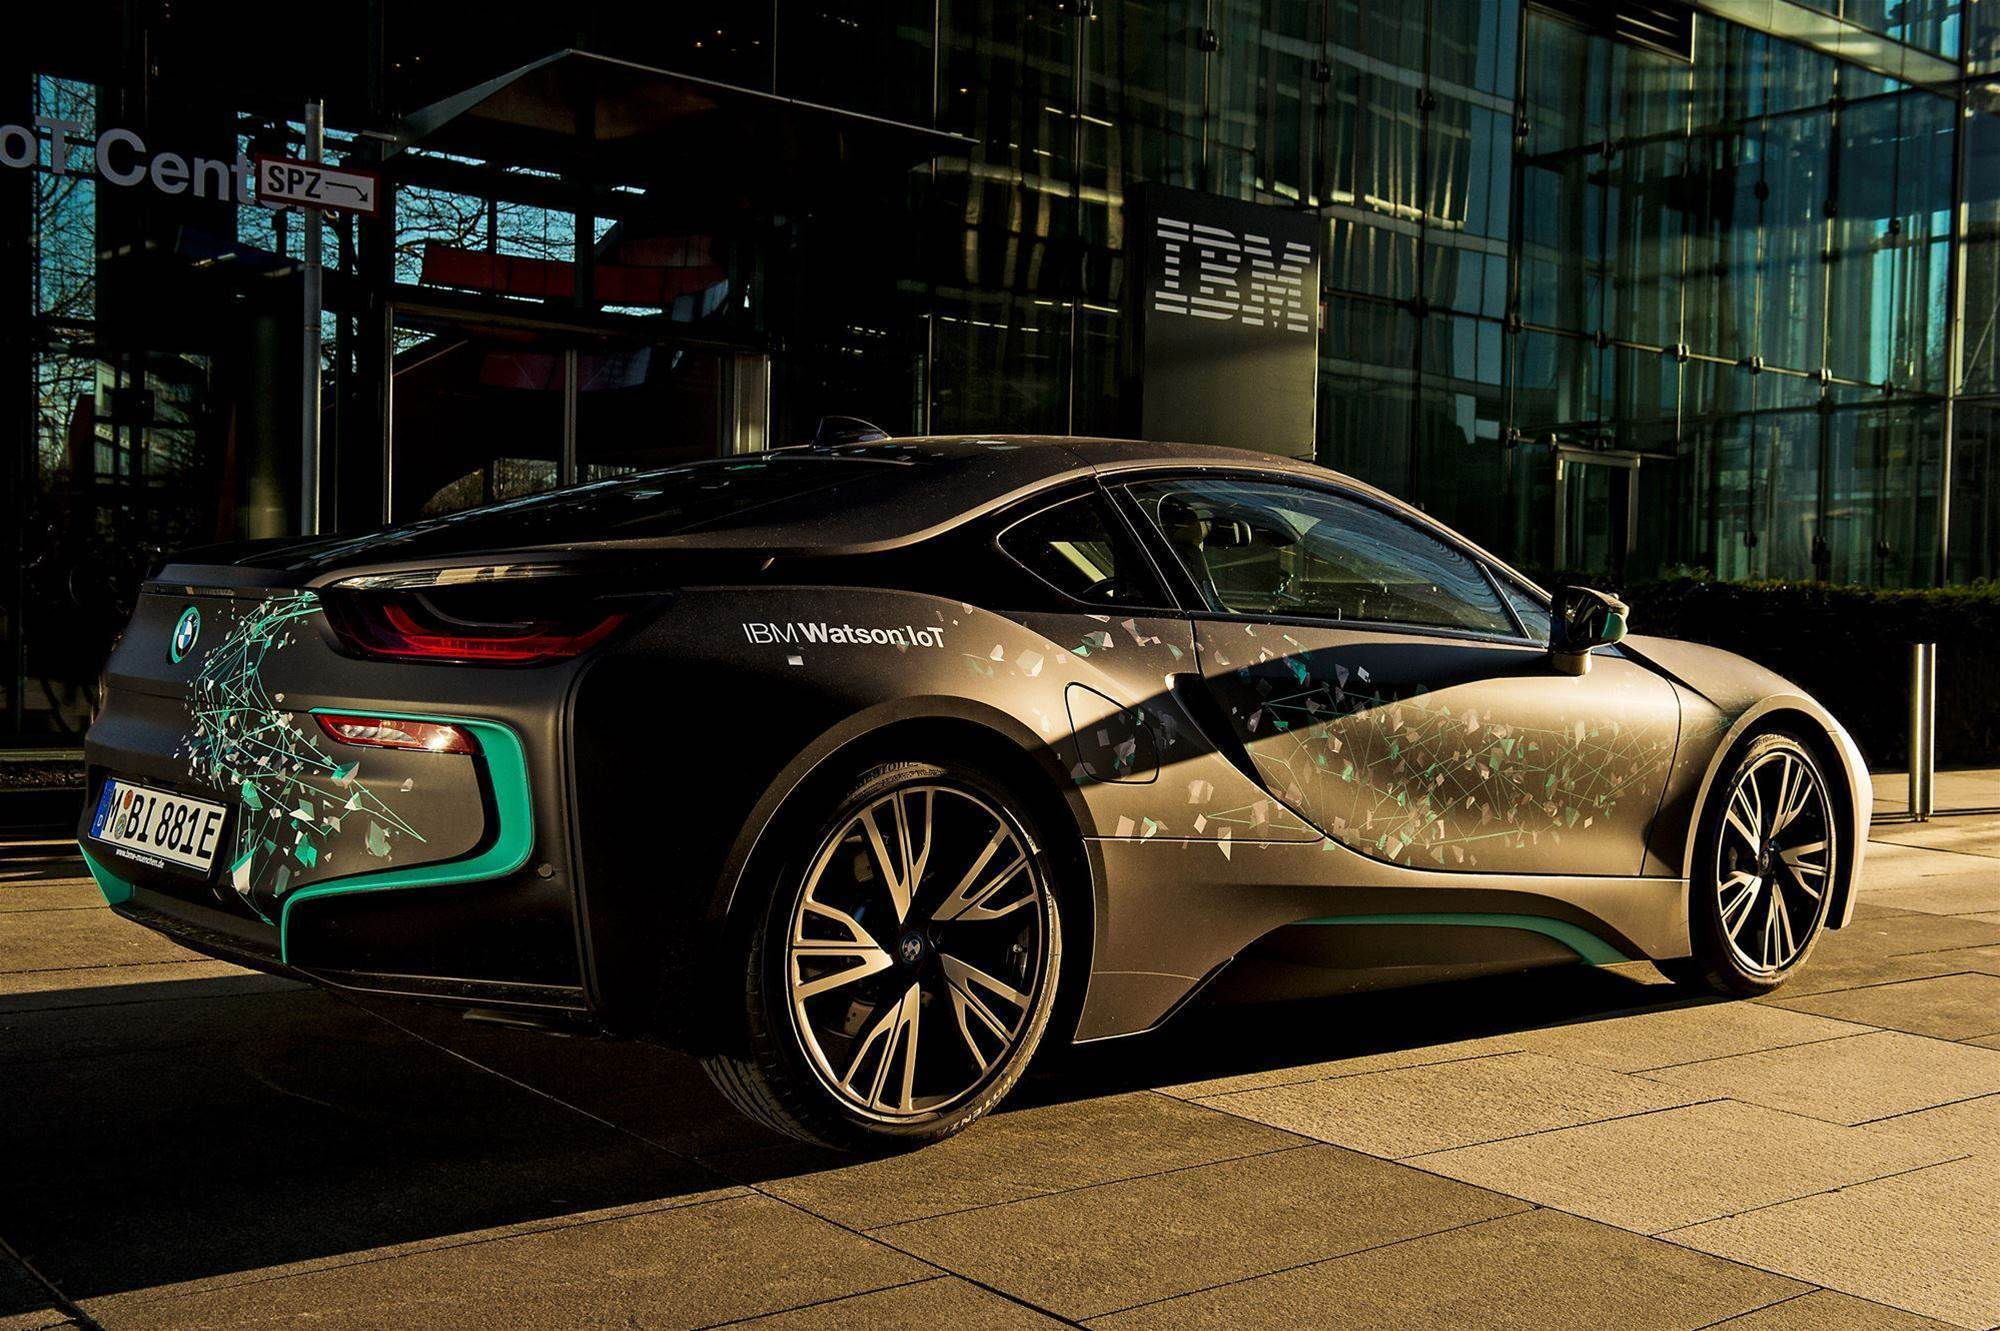 BMW, IBM to bring cognitive computing to cars